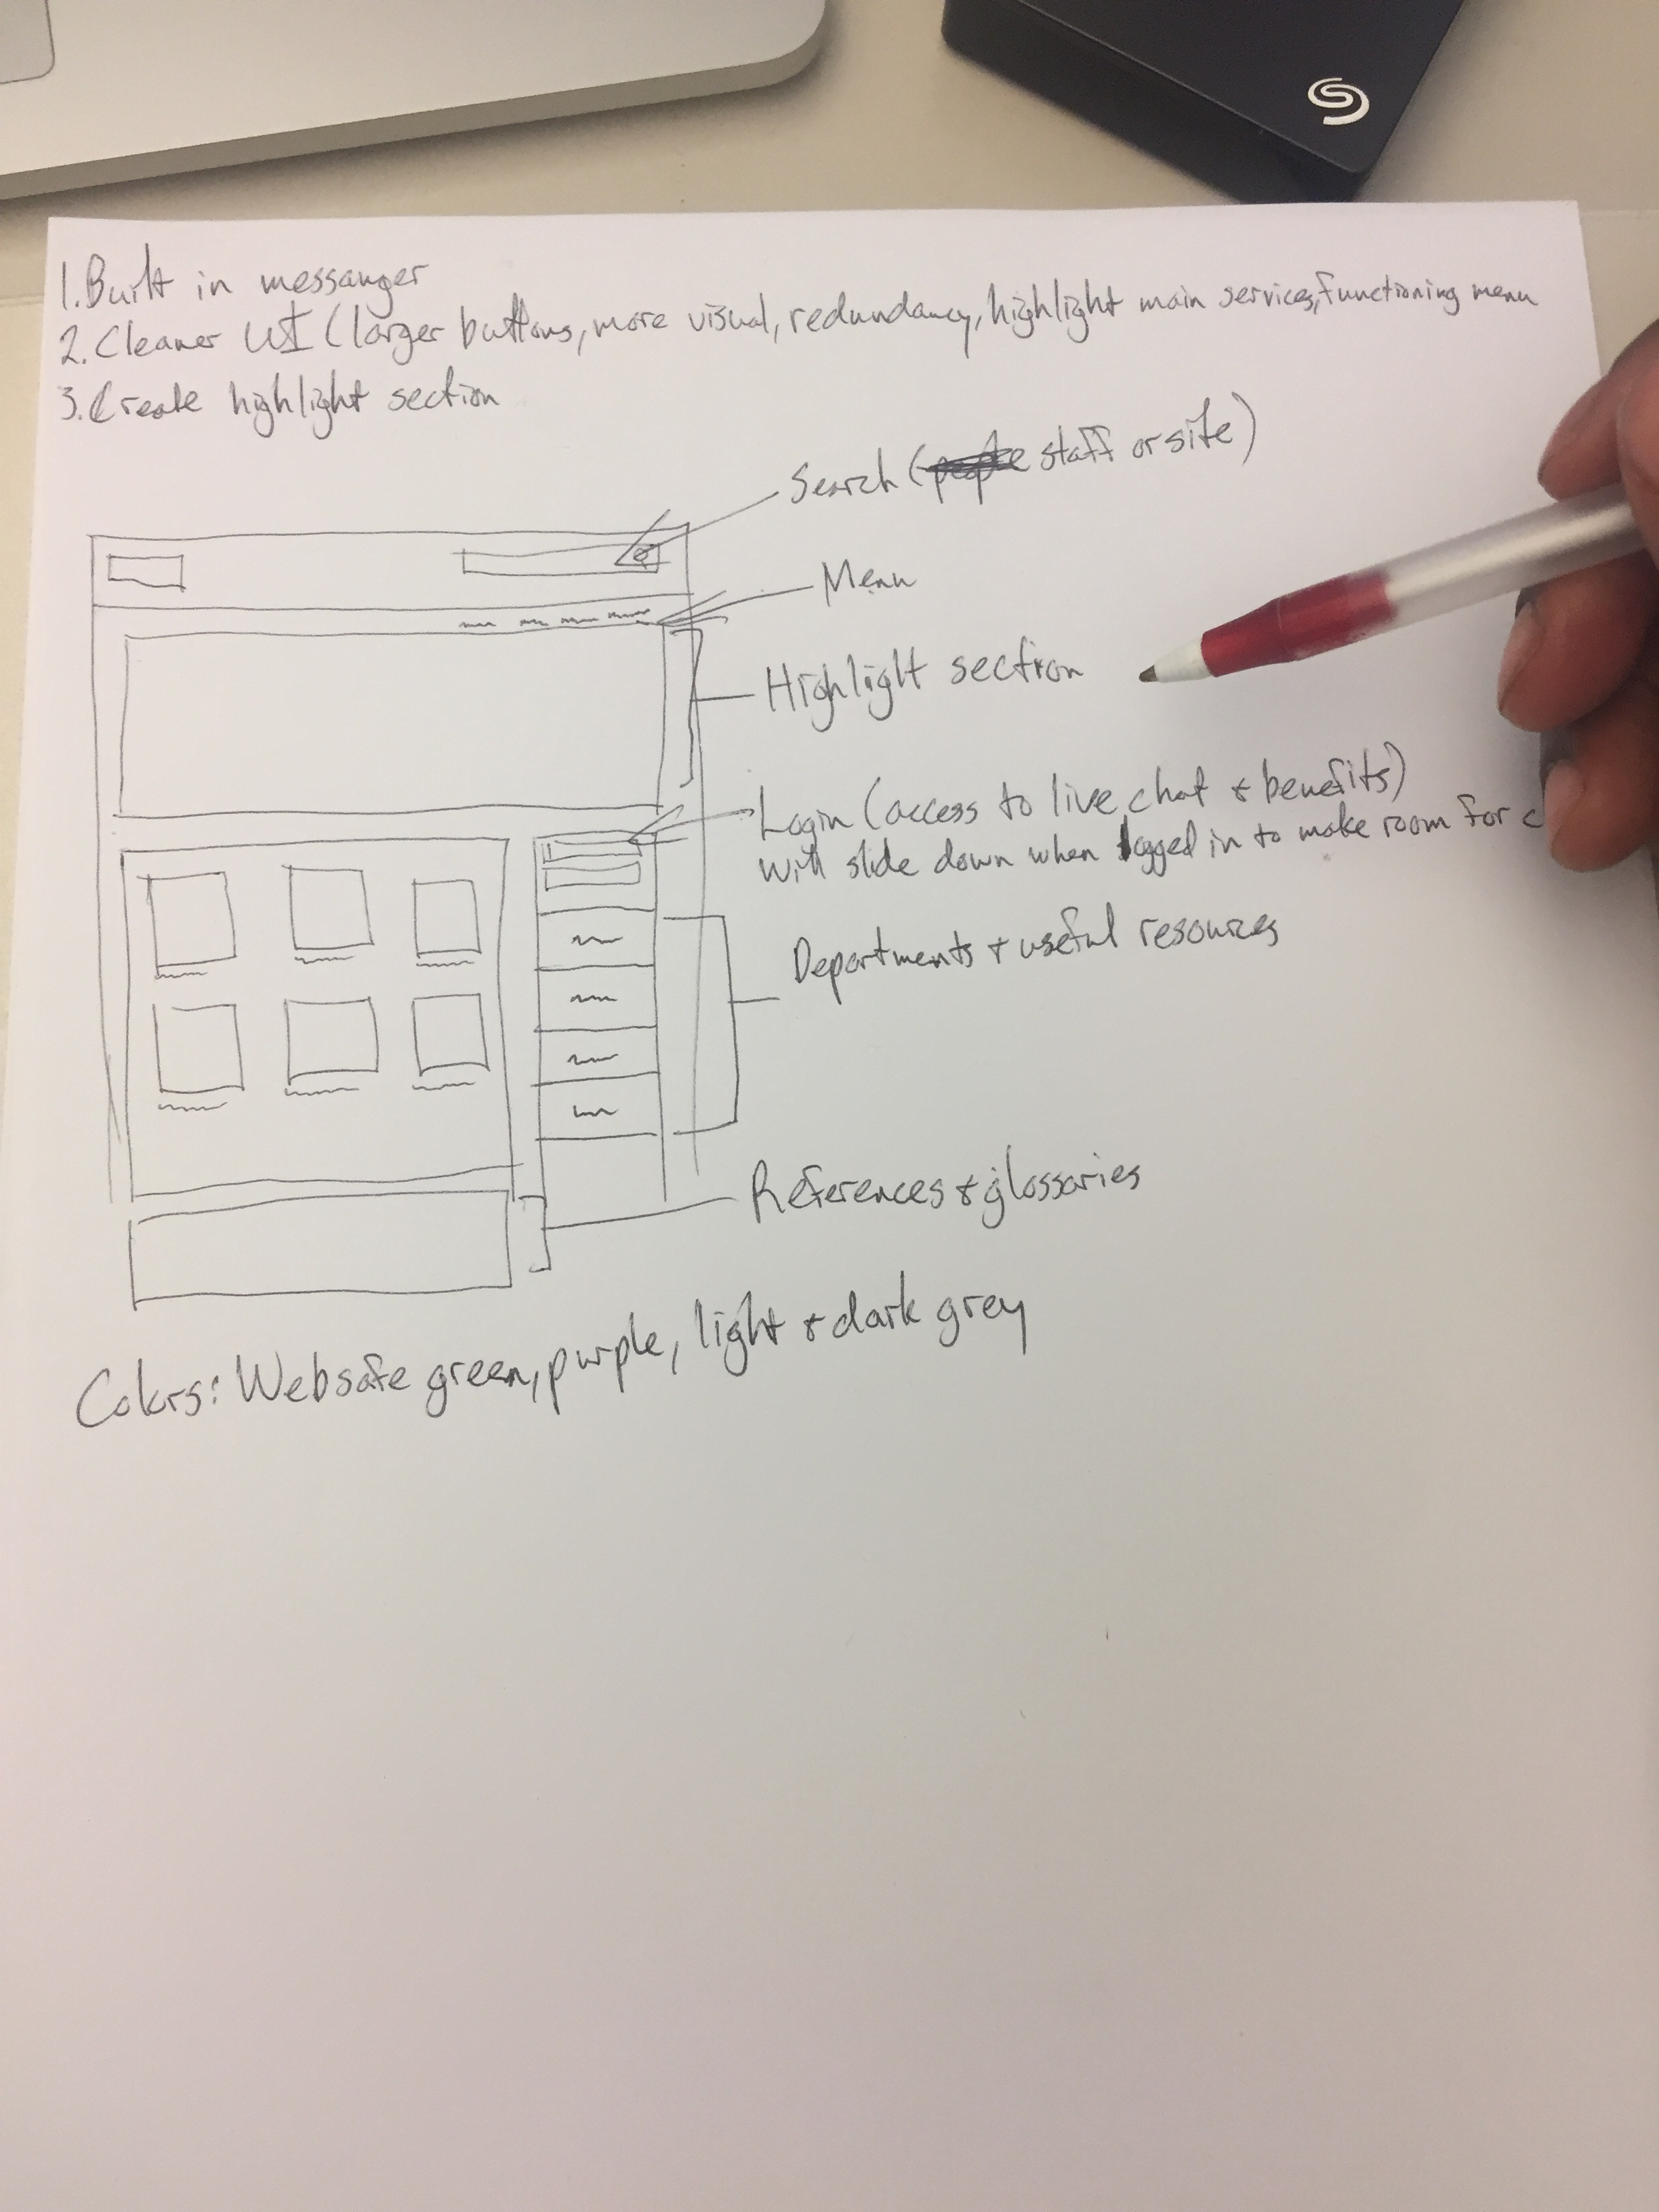 Reimagining... - First Step, sketching out the ideas and the features.